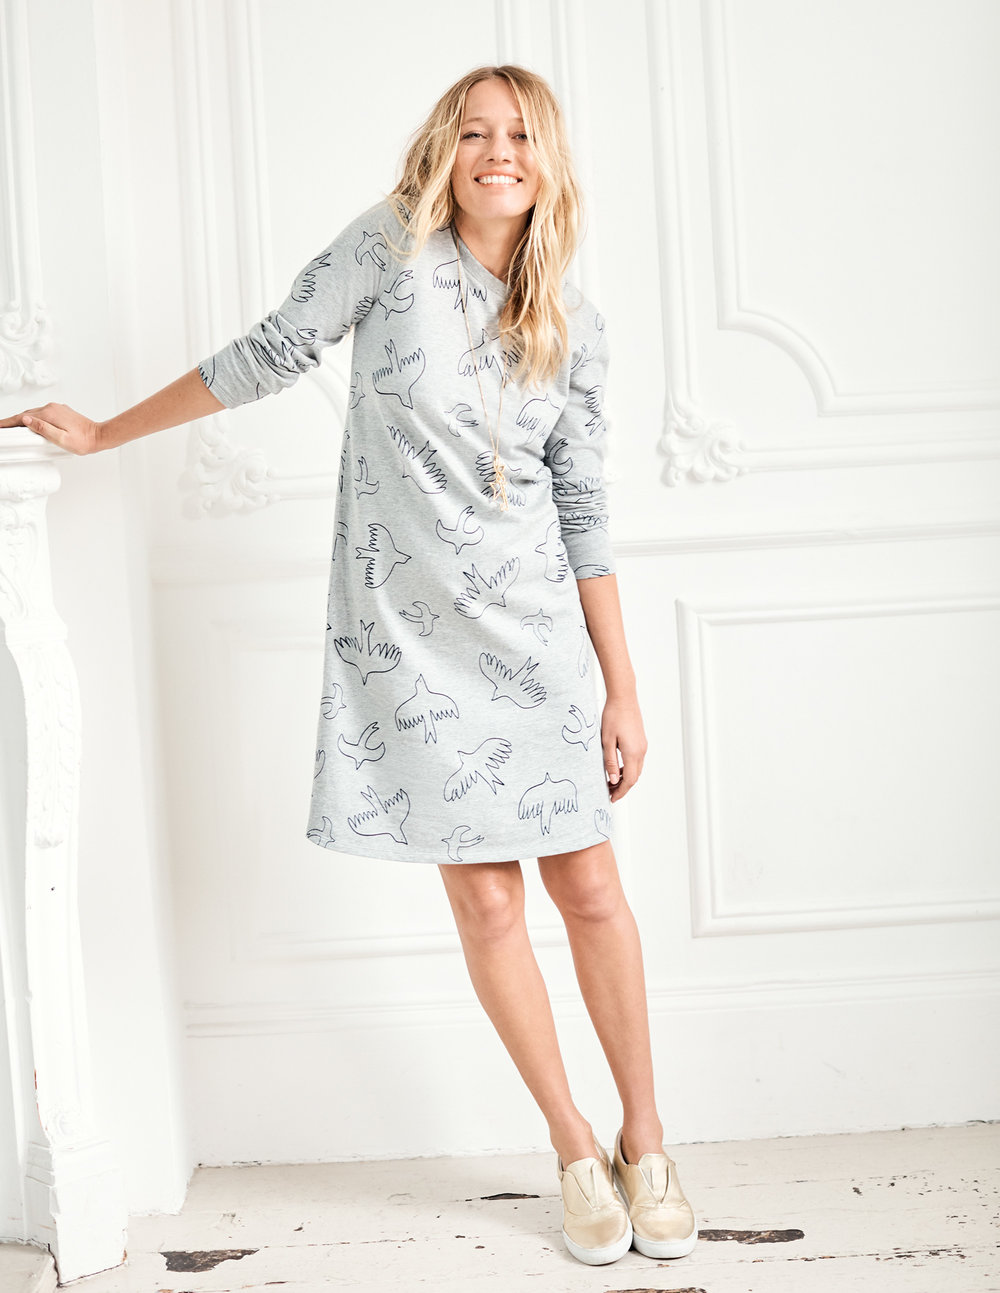 SWEATSHIRT DRESS. Available in long. Boden. Was: $98. Now: $58-68.